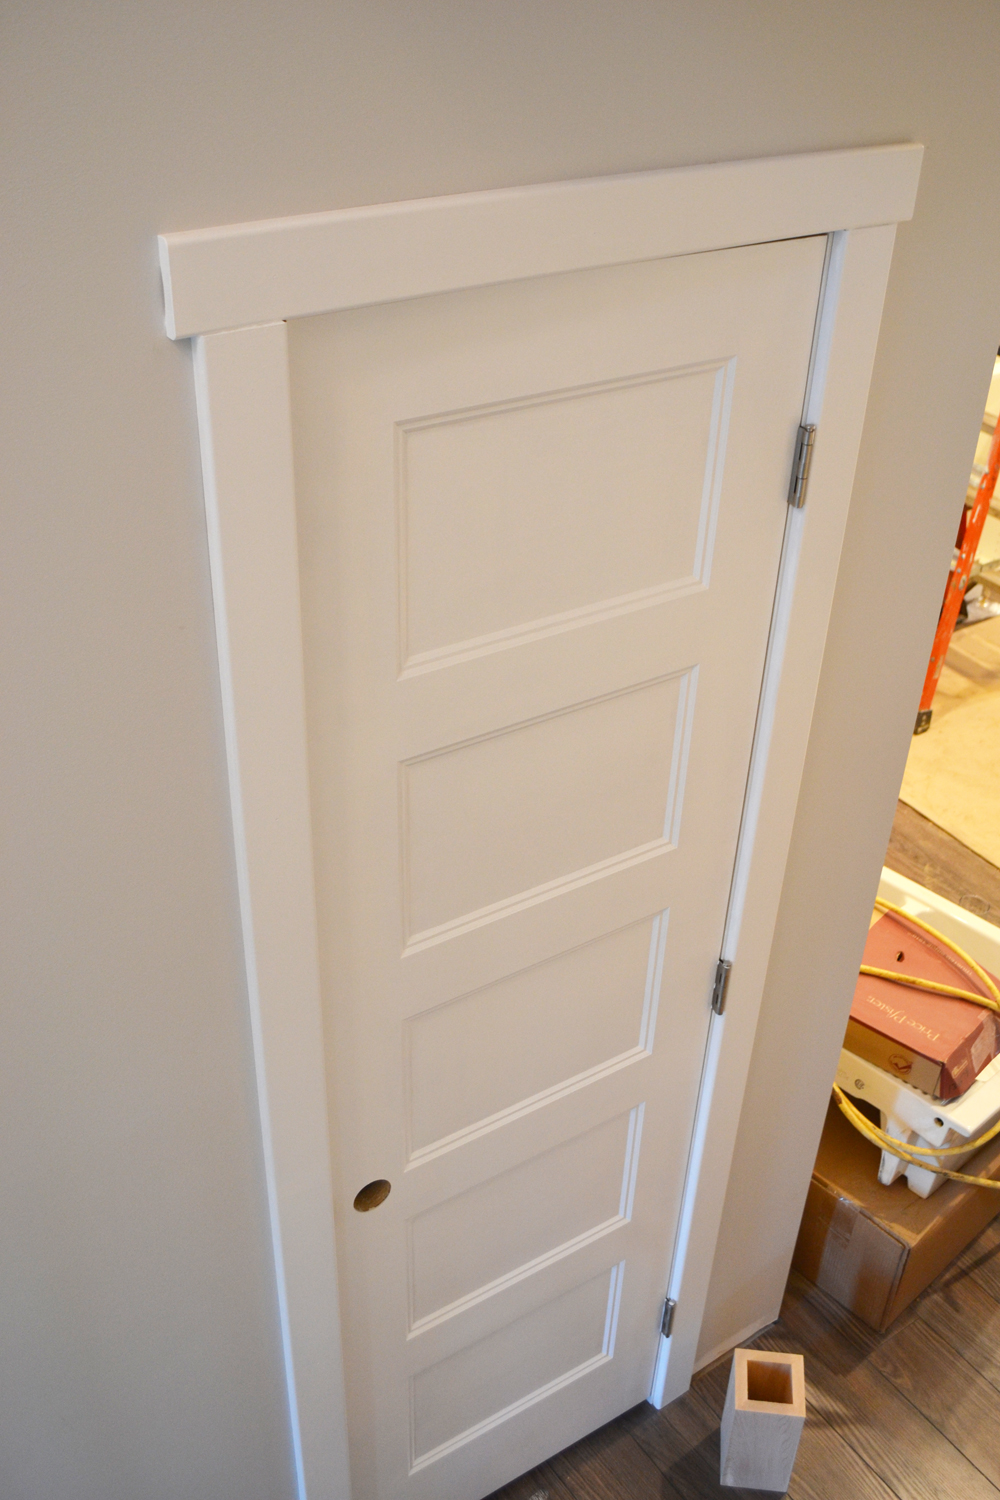 Painting doors with a streak free finish where we found for Cost to paint interior doors and trim